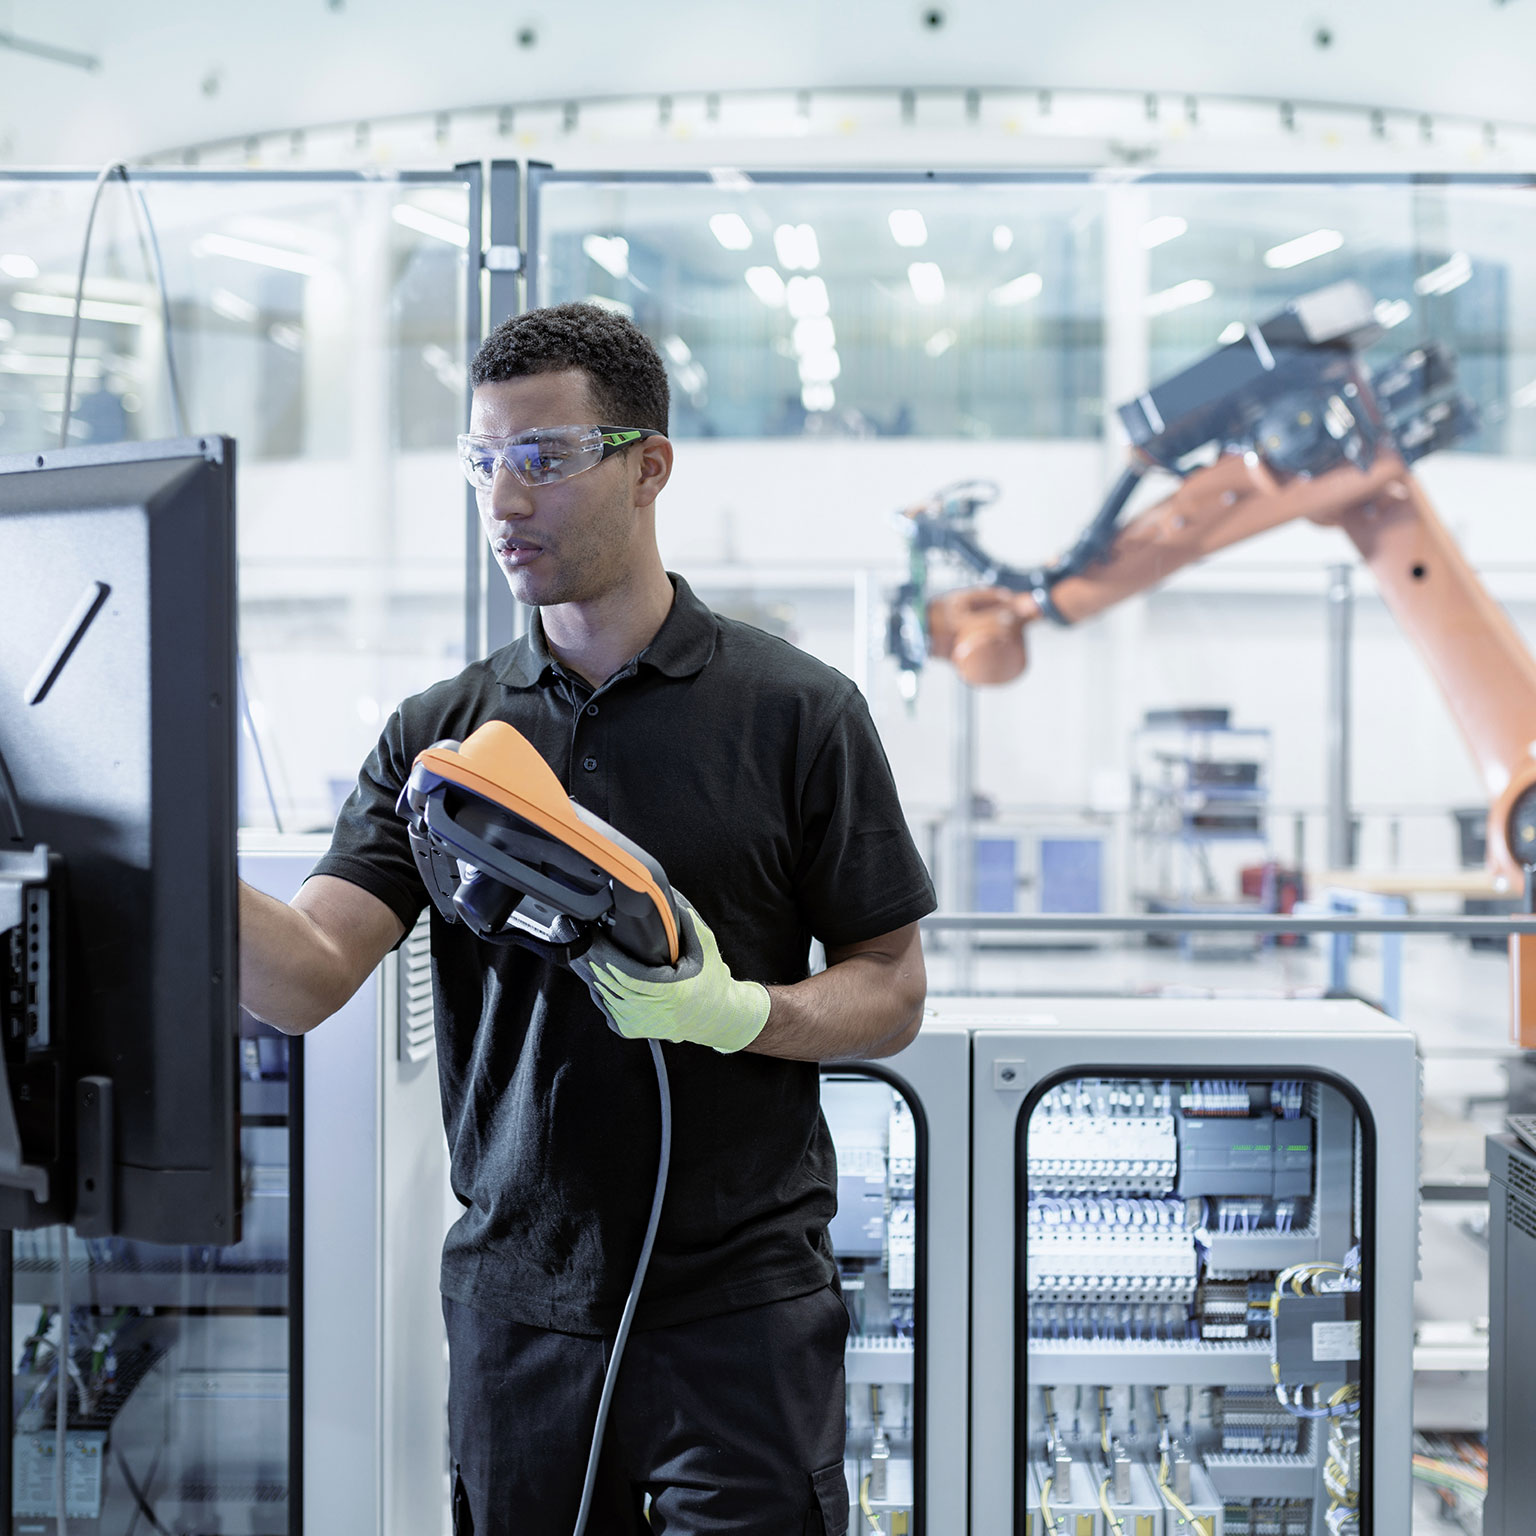 COVID-19: An inflection point for Industry 4.0